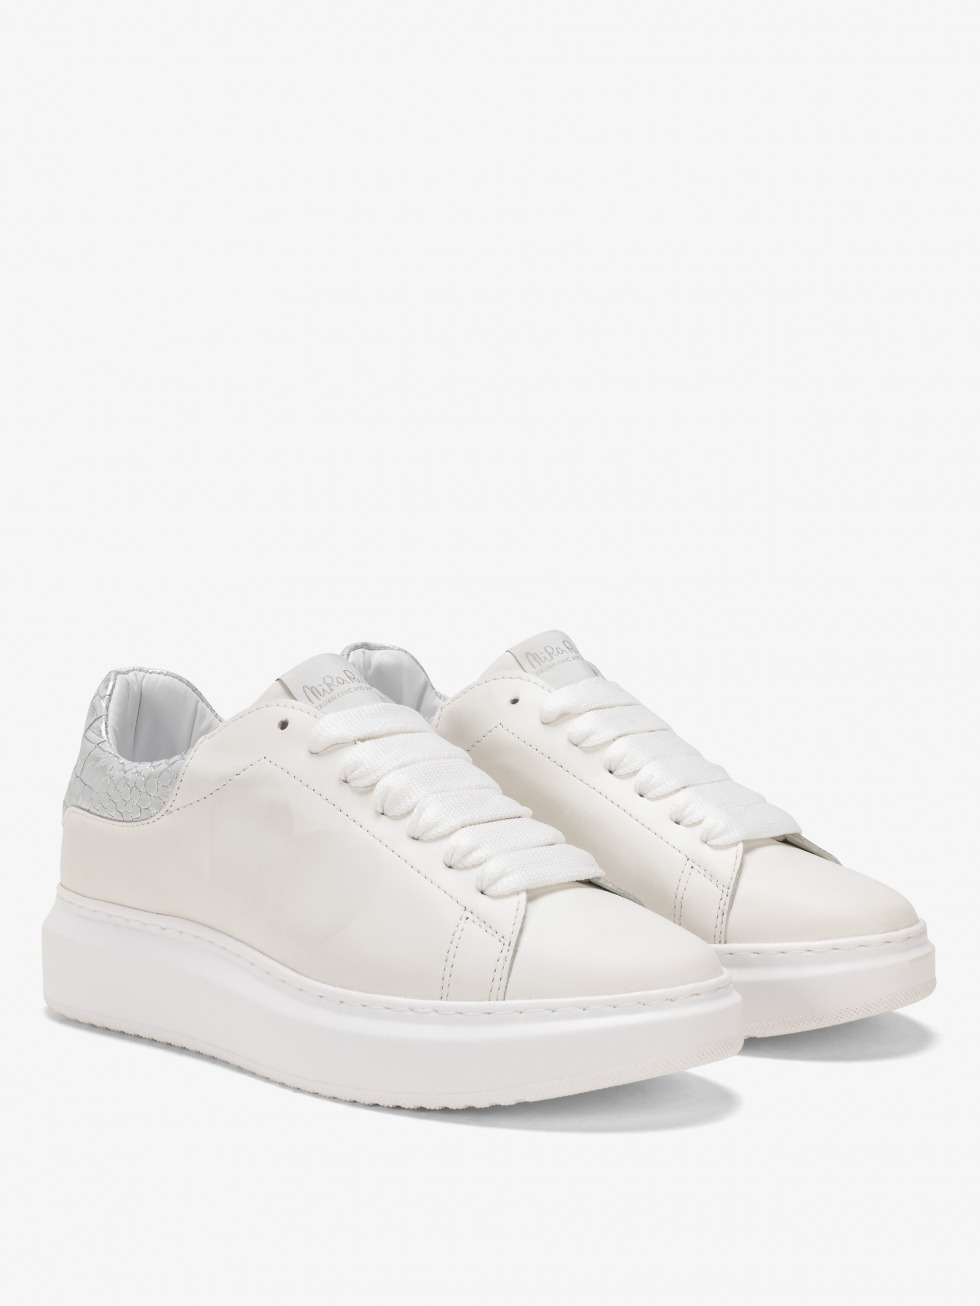 Angel Sneakers Cocco Silver - Heart